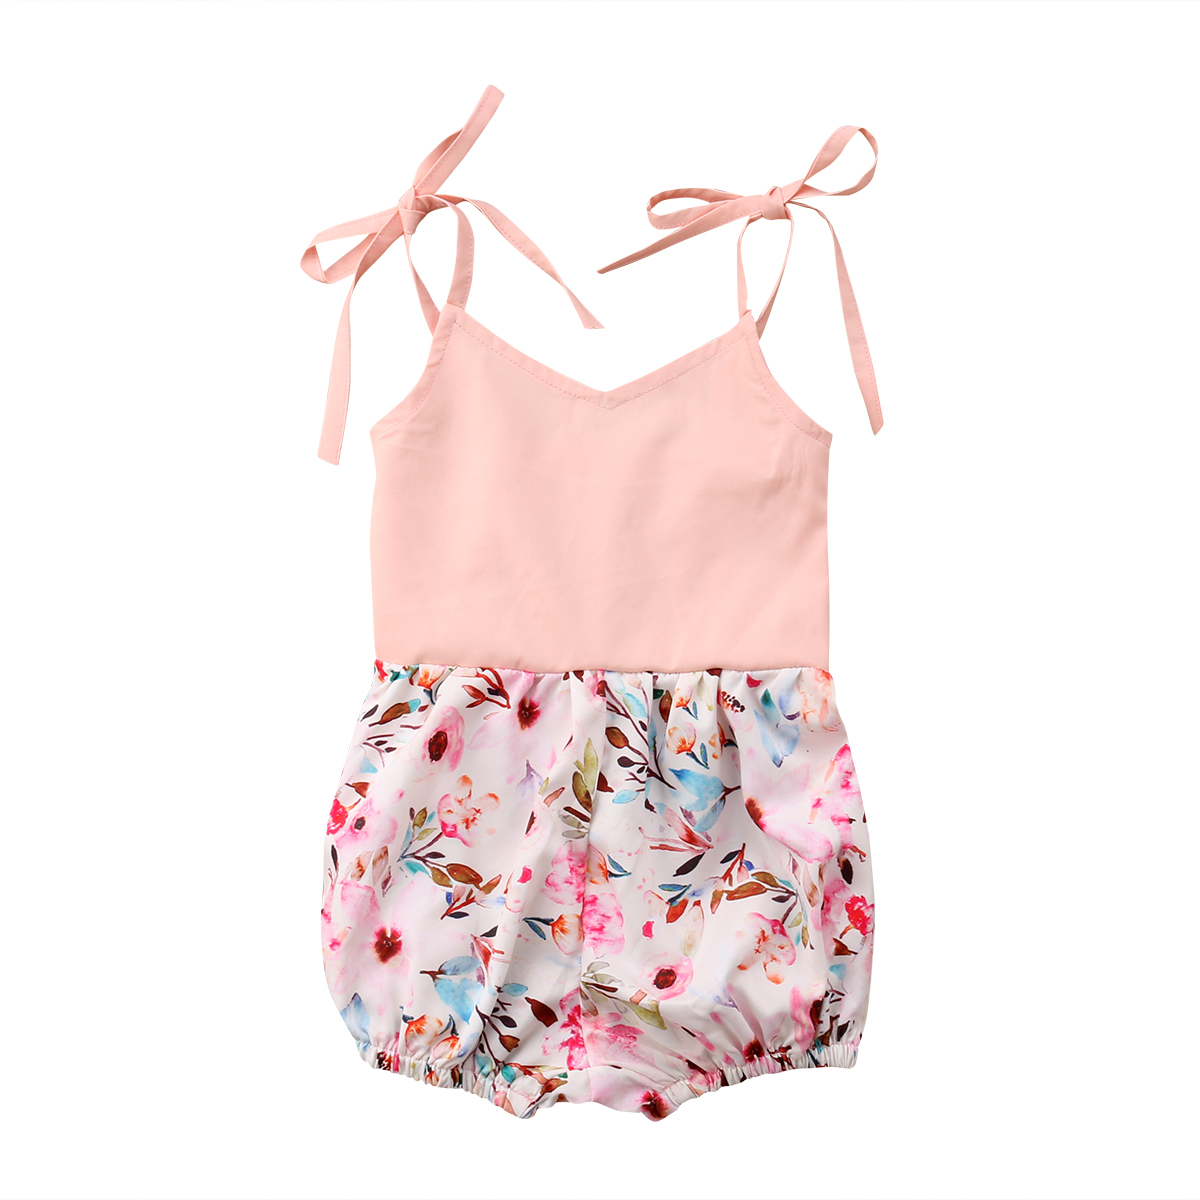 Pudcoco Newborn Baby Girl Flower   Romper   Jumpsuit Clothes Outfit 0-24M